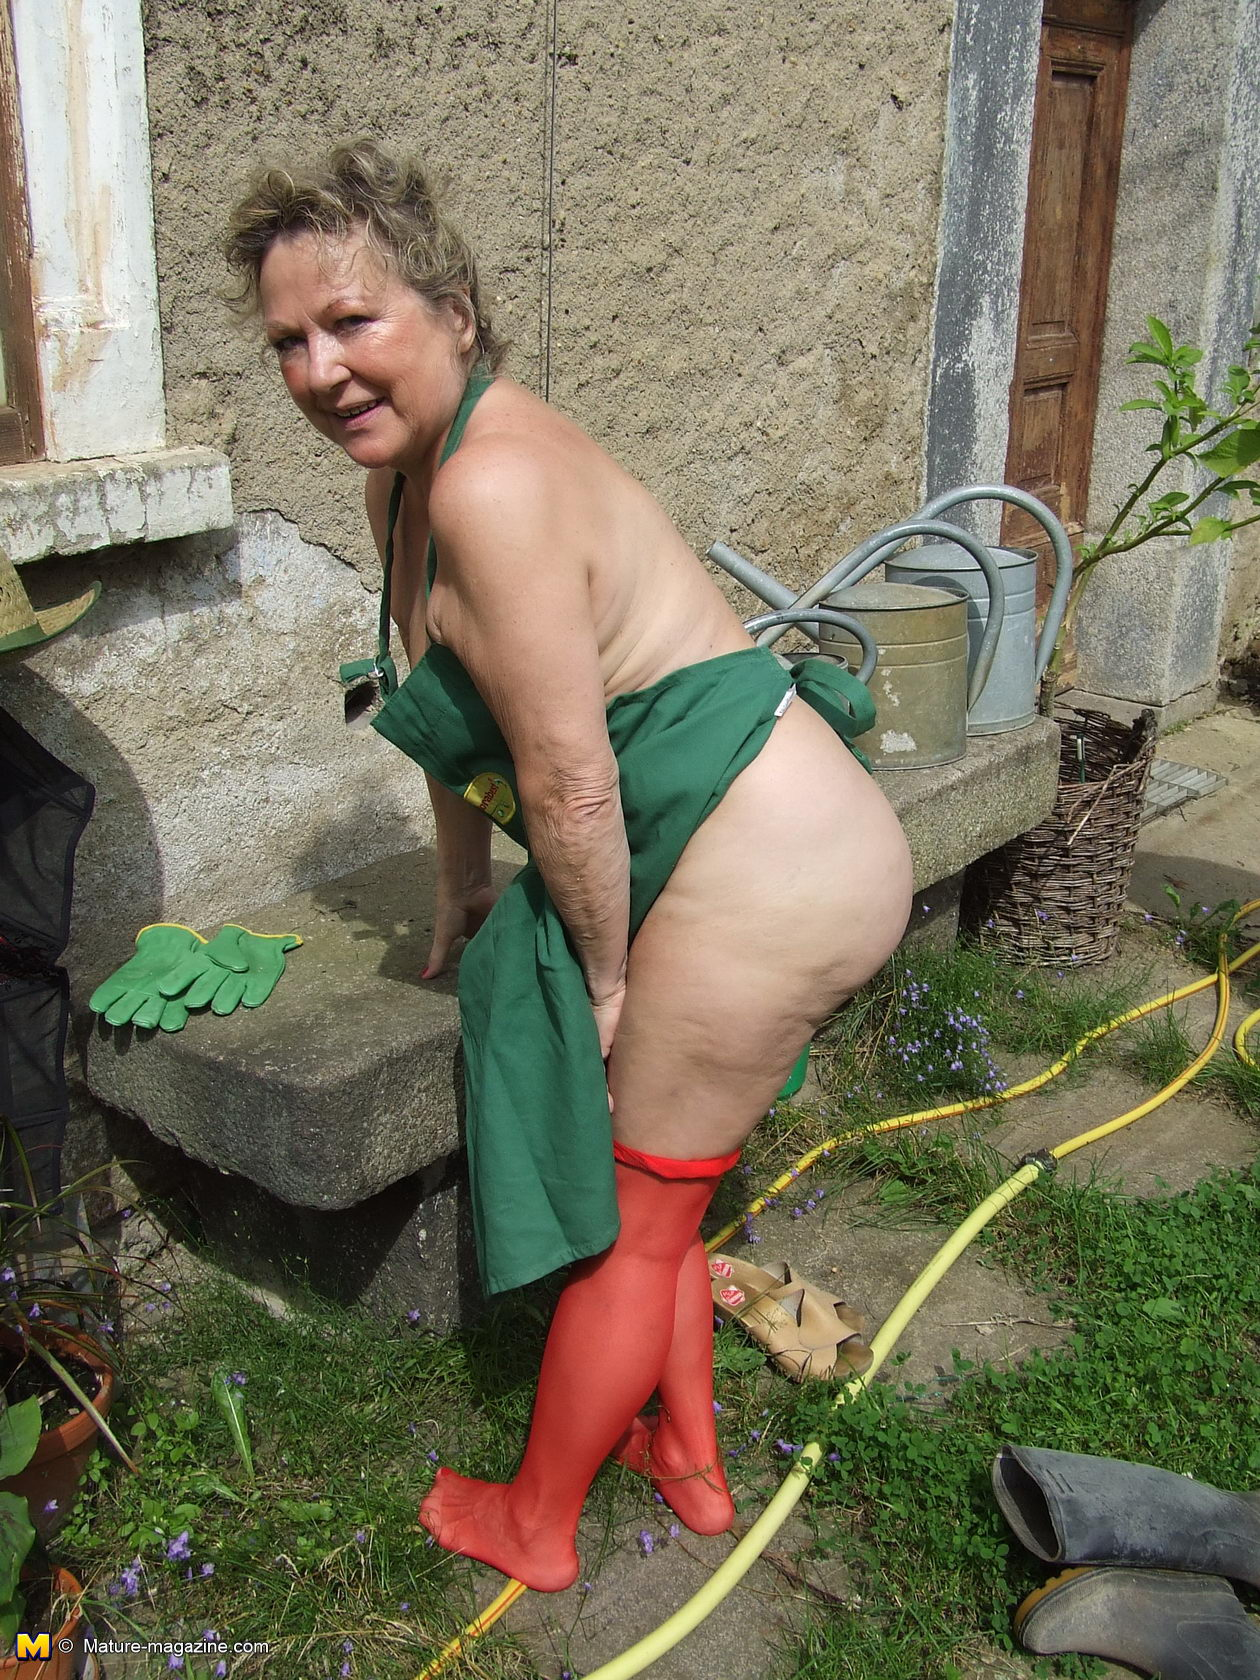 Photos of naked grannies in the garden